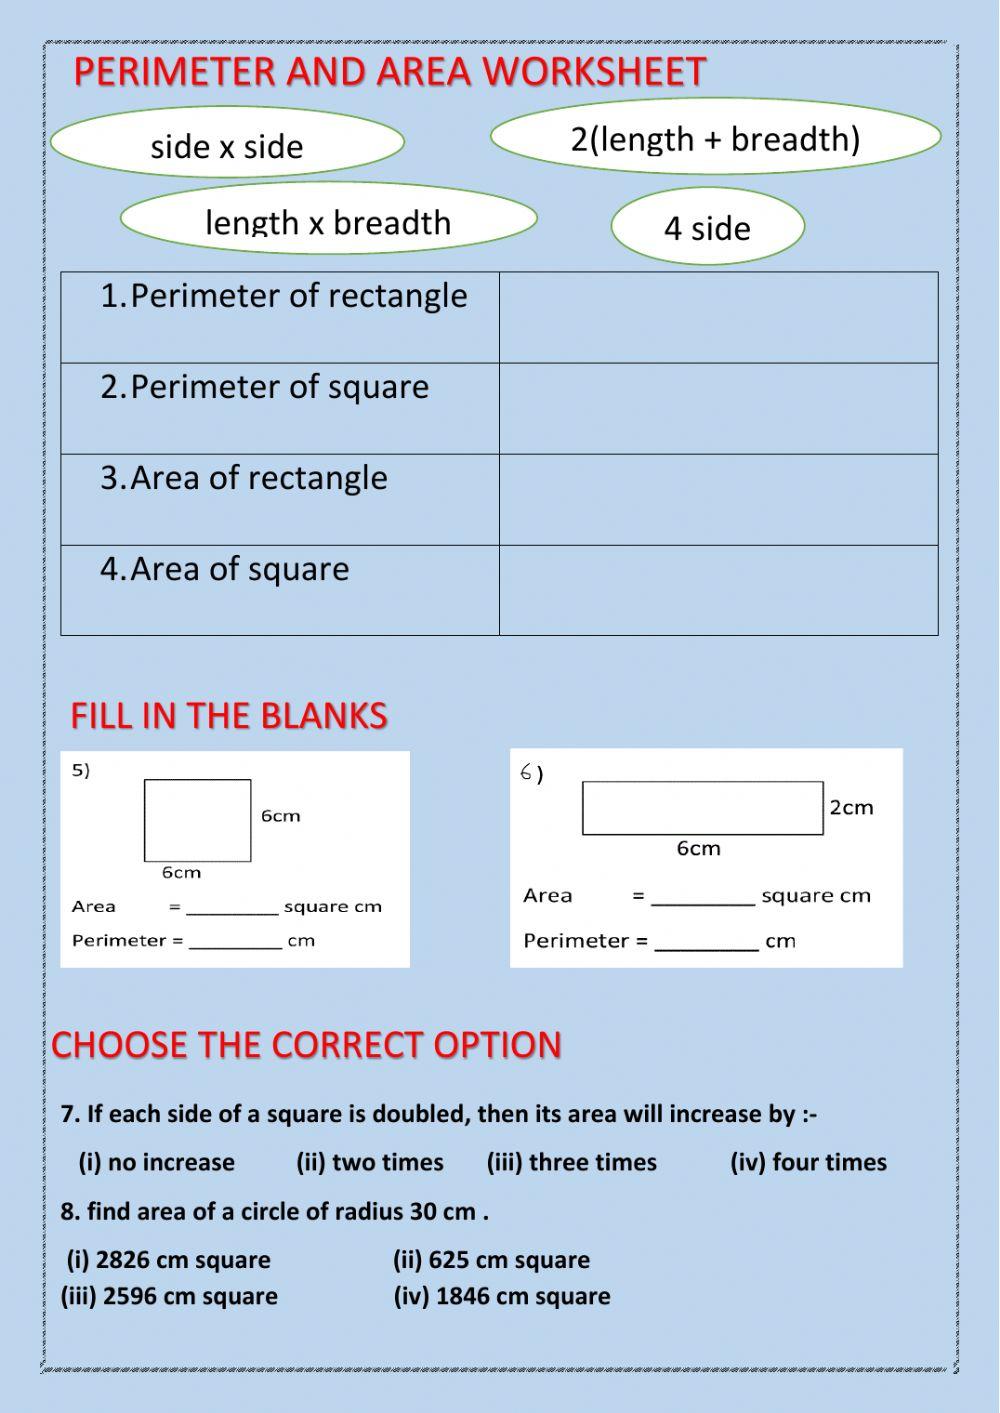 hight resolution of Perimeter and area exercise